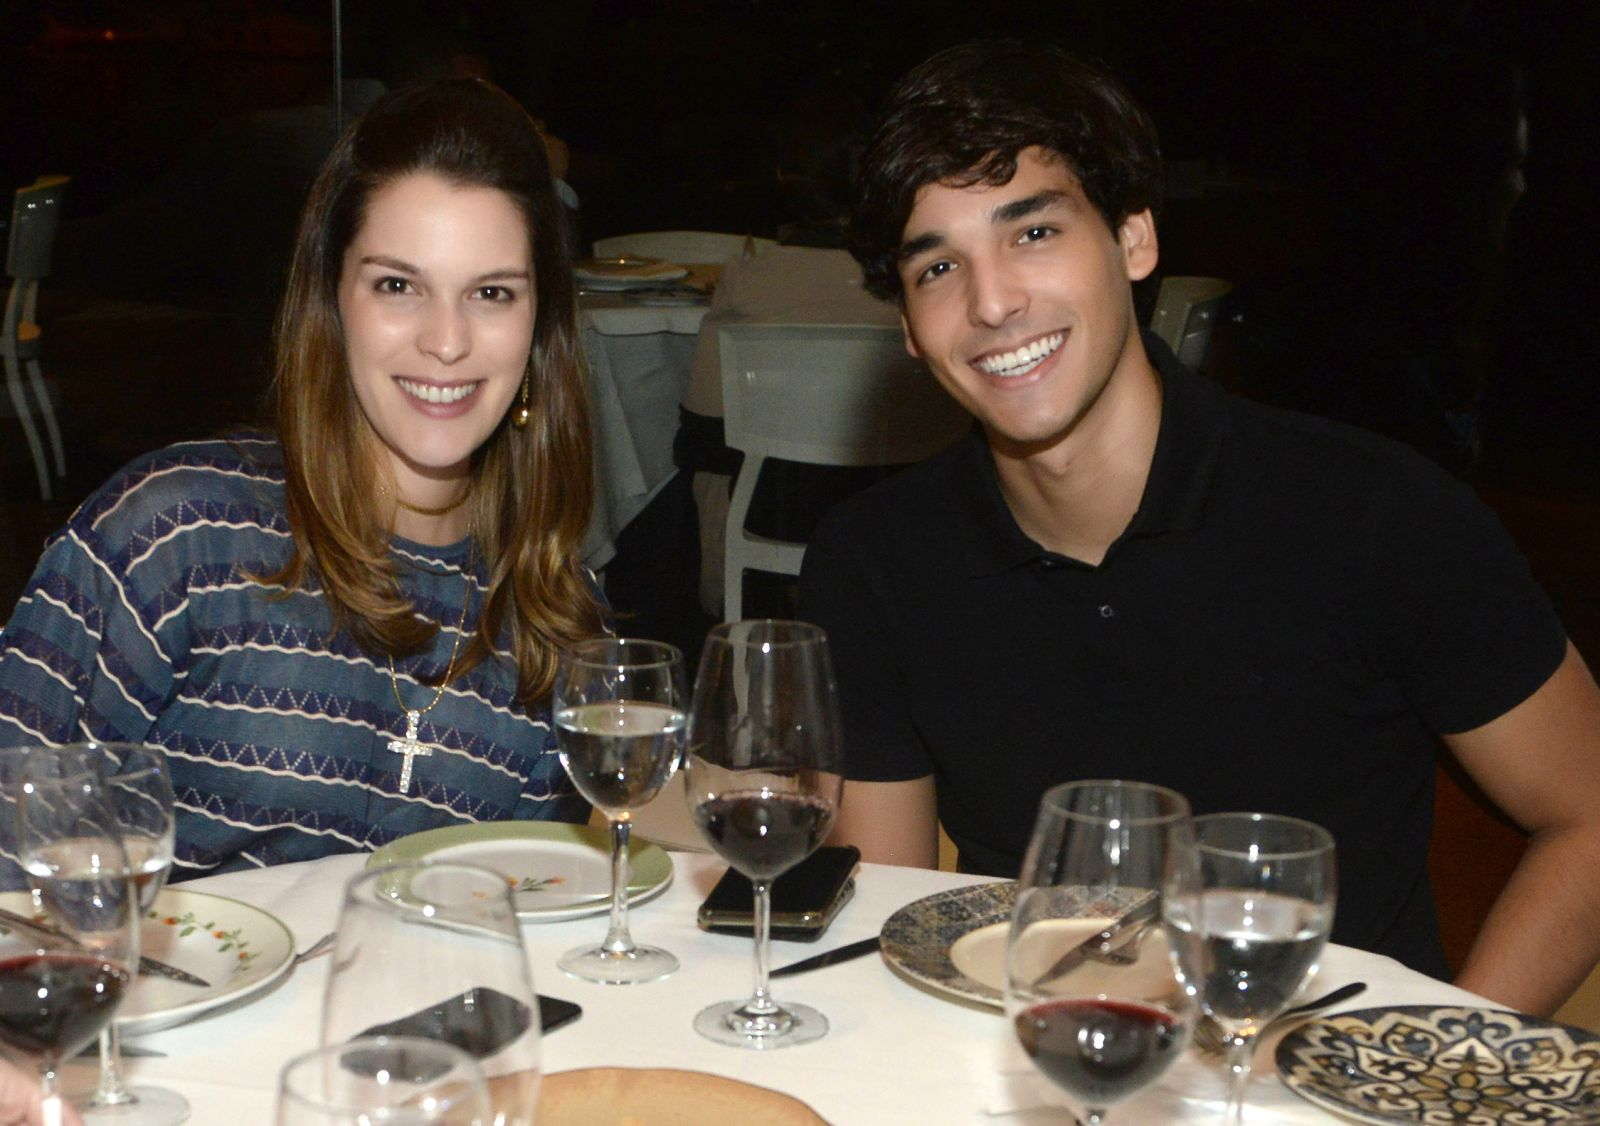 Stephanie Mattos and Caio Matos special brother having dinner in Amado